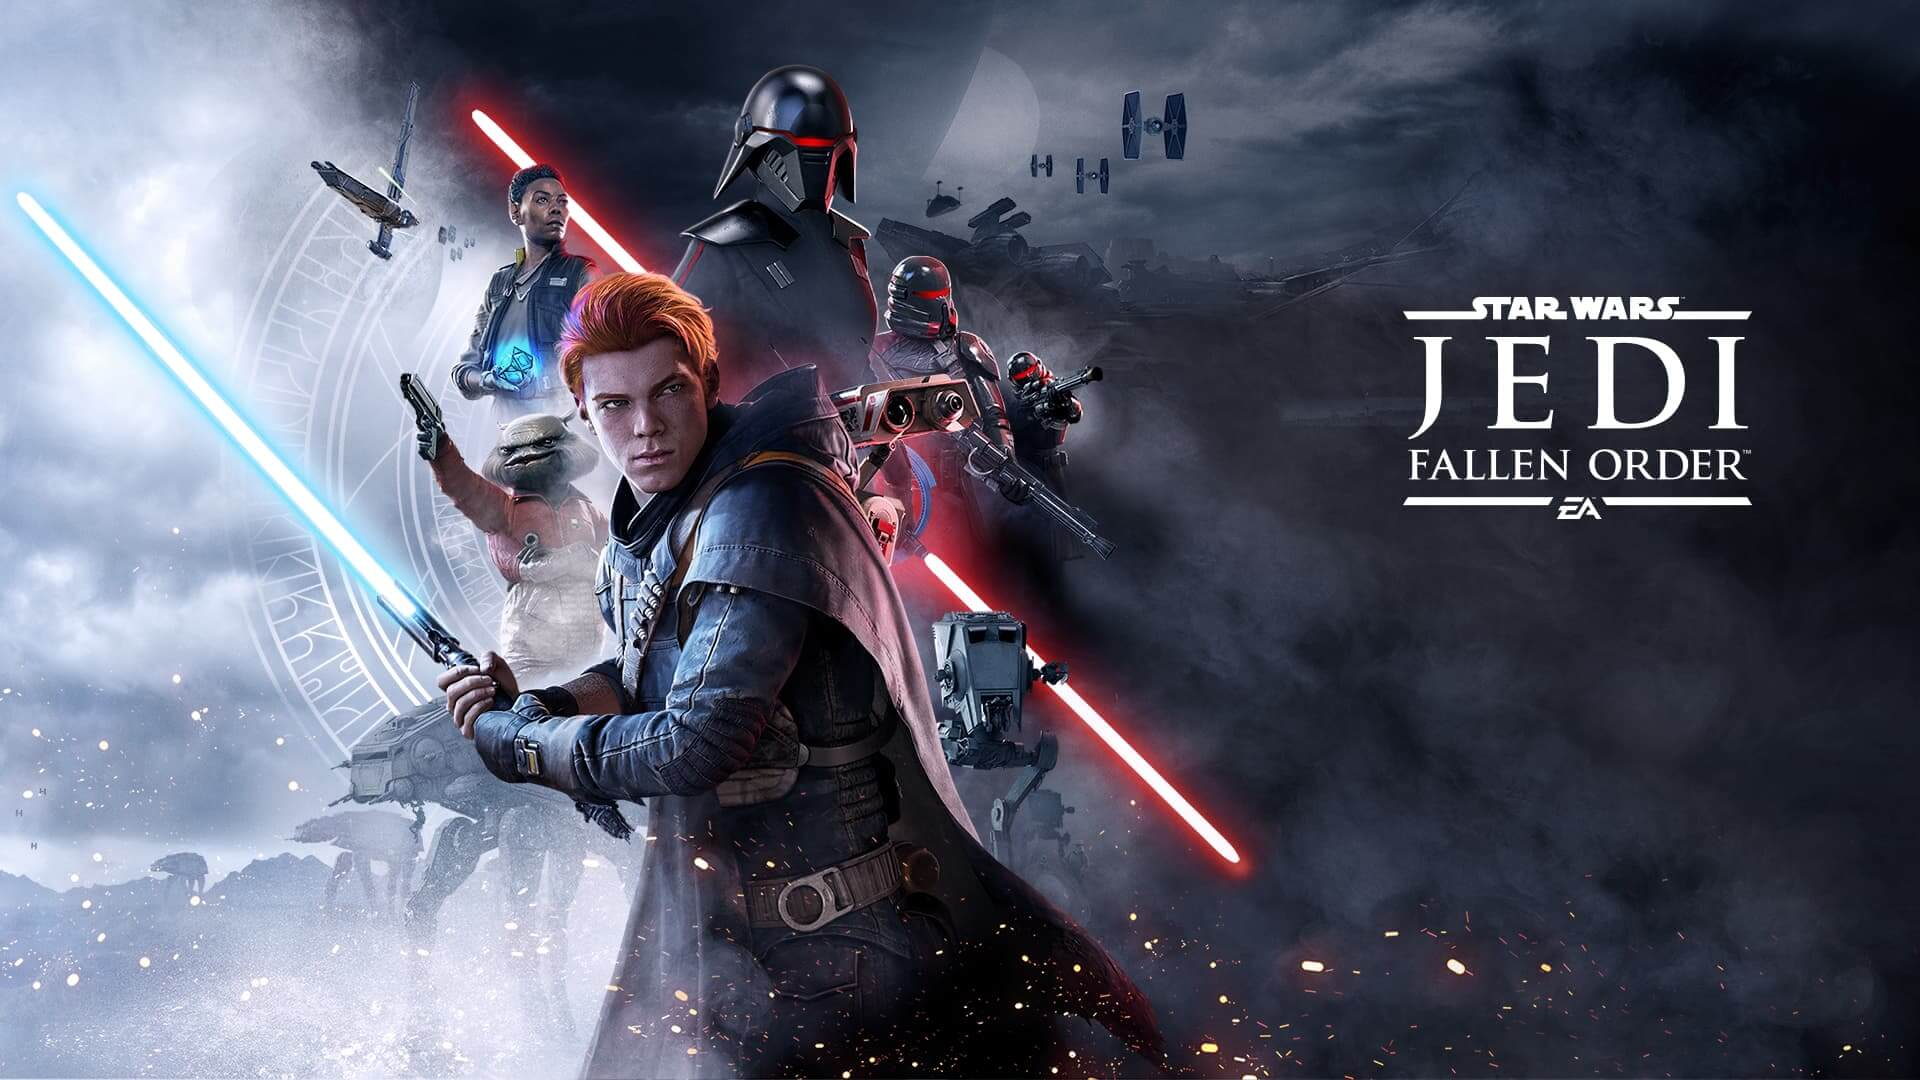 Star Wars Jedi: Fallen Order 2 Reportedly Already In The Development